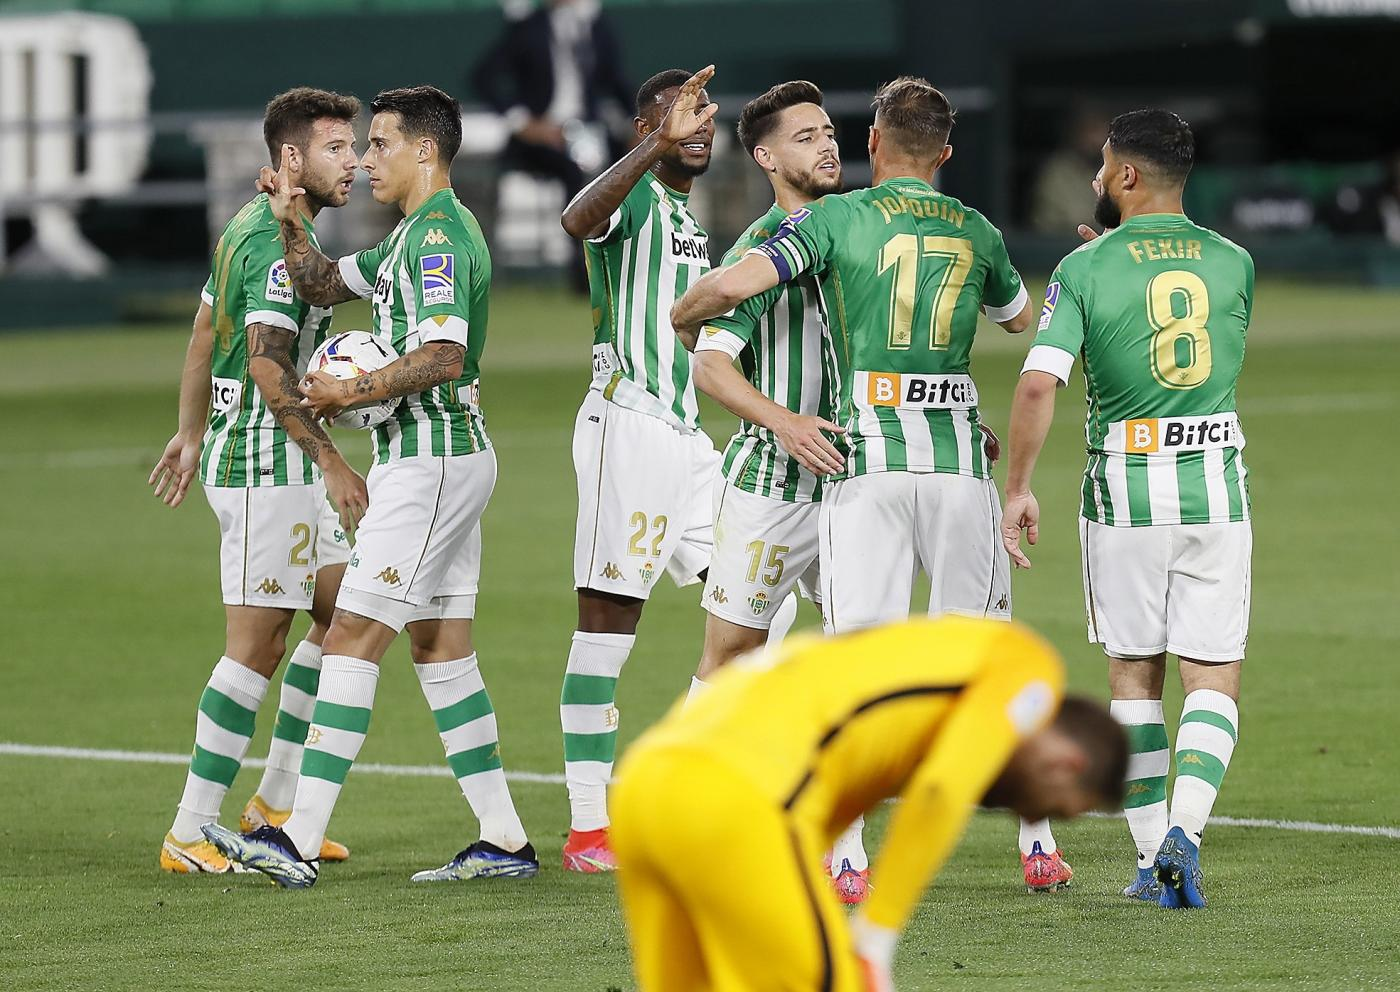 Real Betis- Atlético de Madrid.